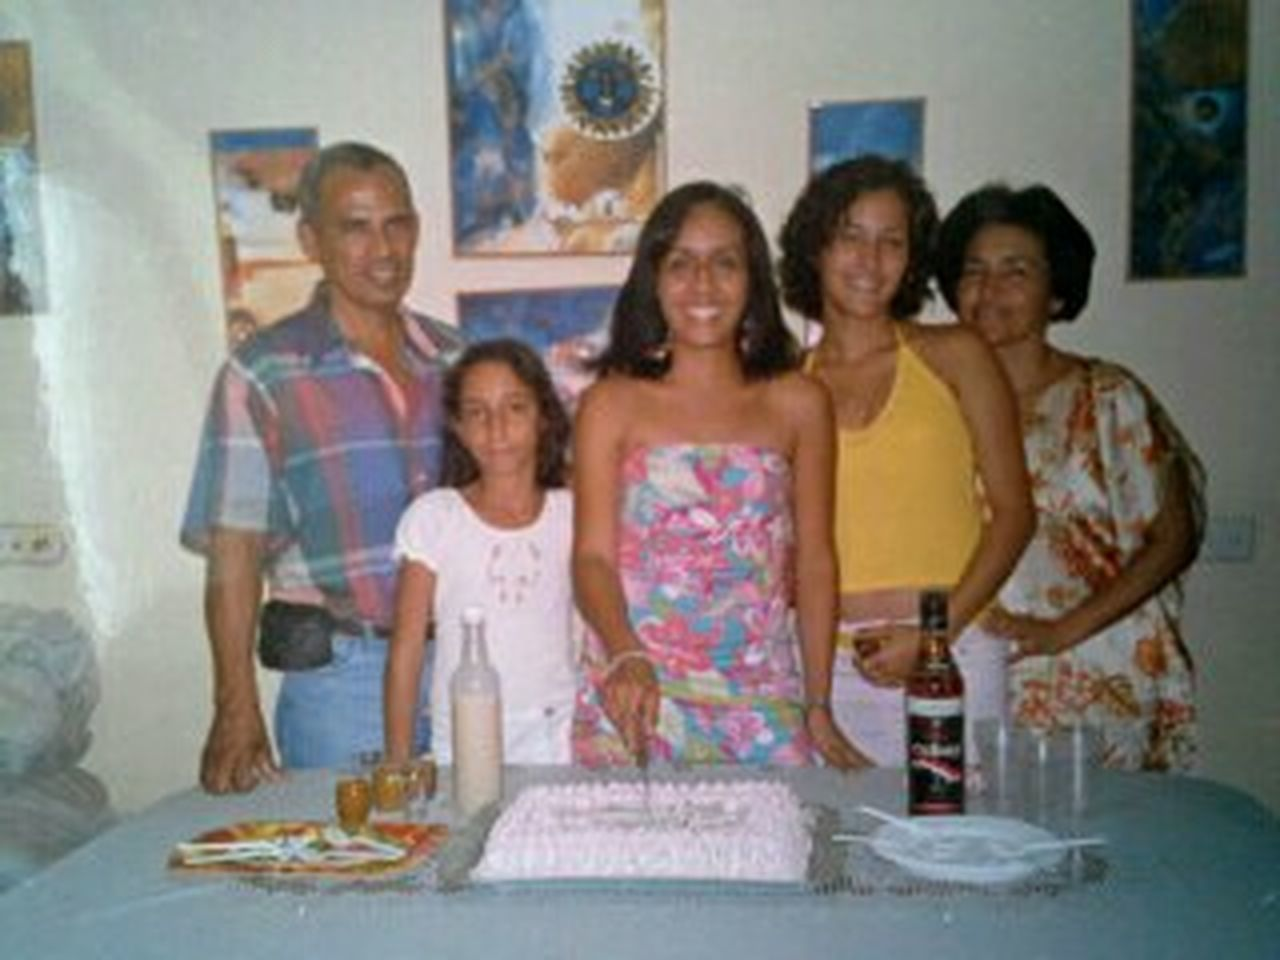 Family Portrait Celebrating My Birthday years ago ❤❤❤❤❤❤❤❤❤ Cheese! Cuba